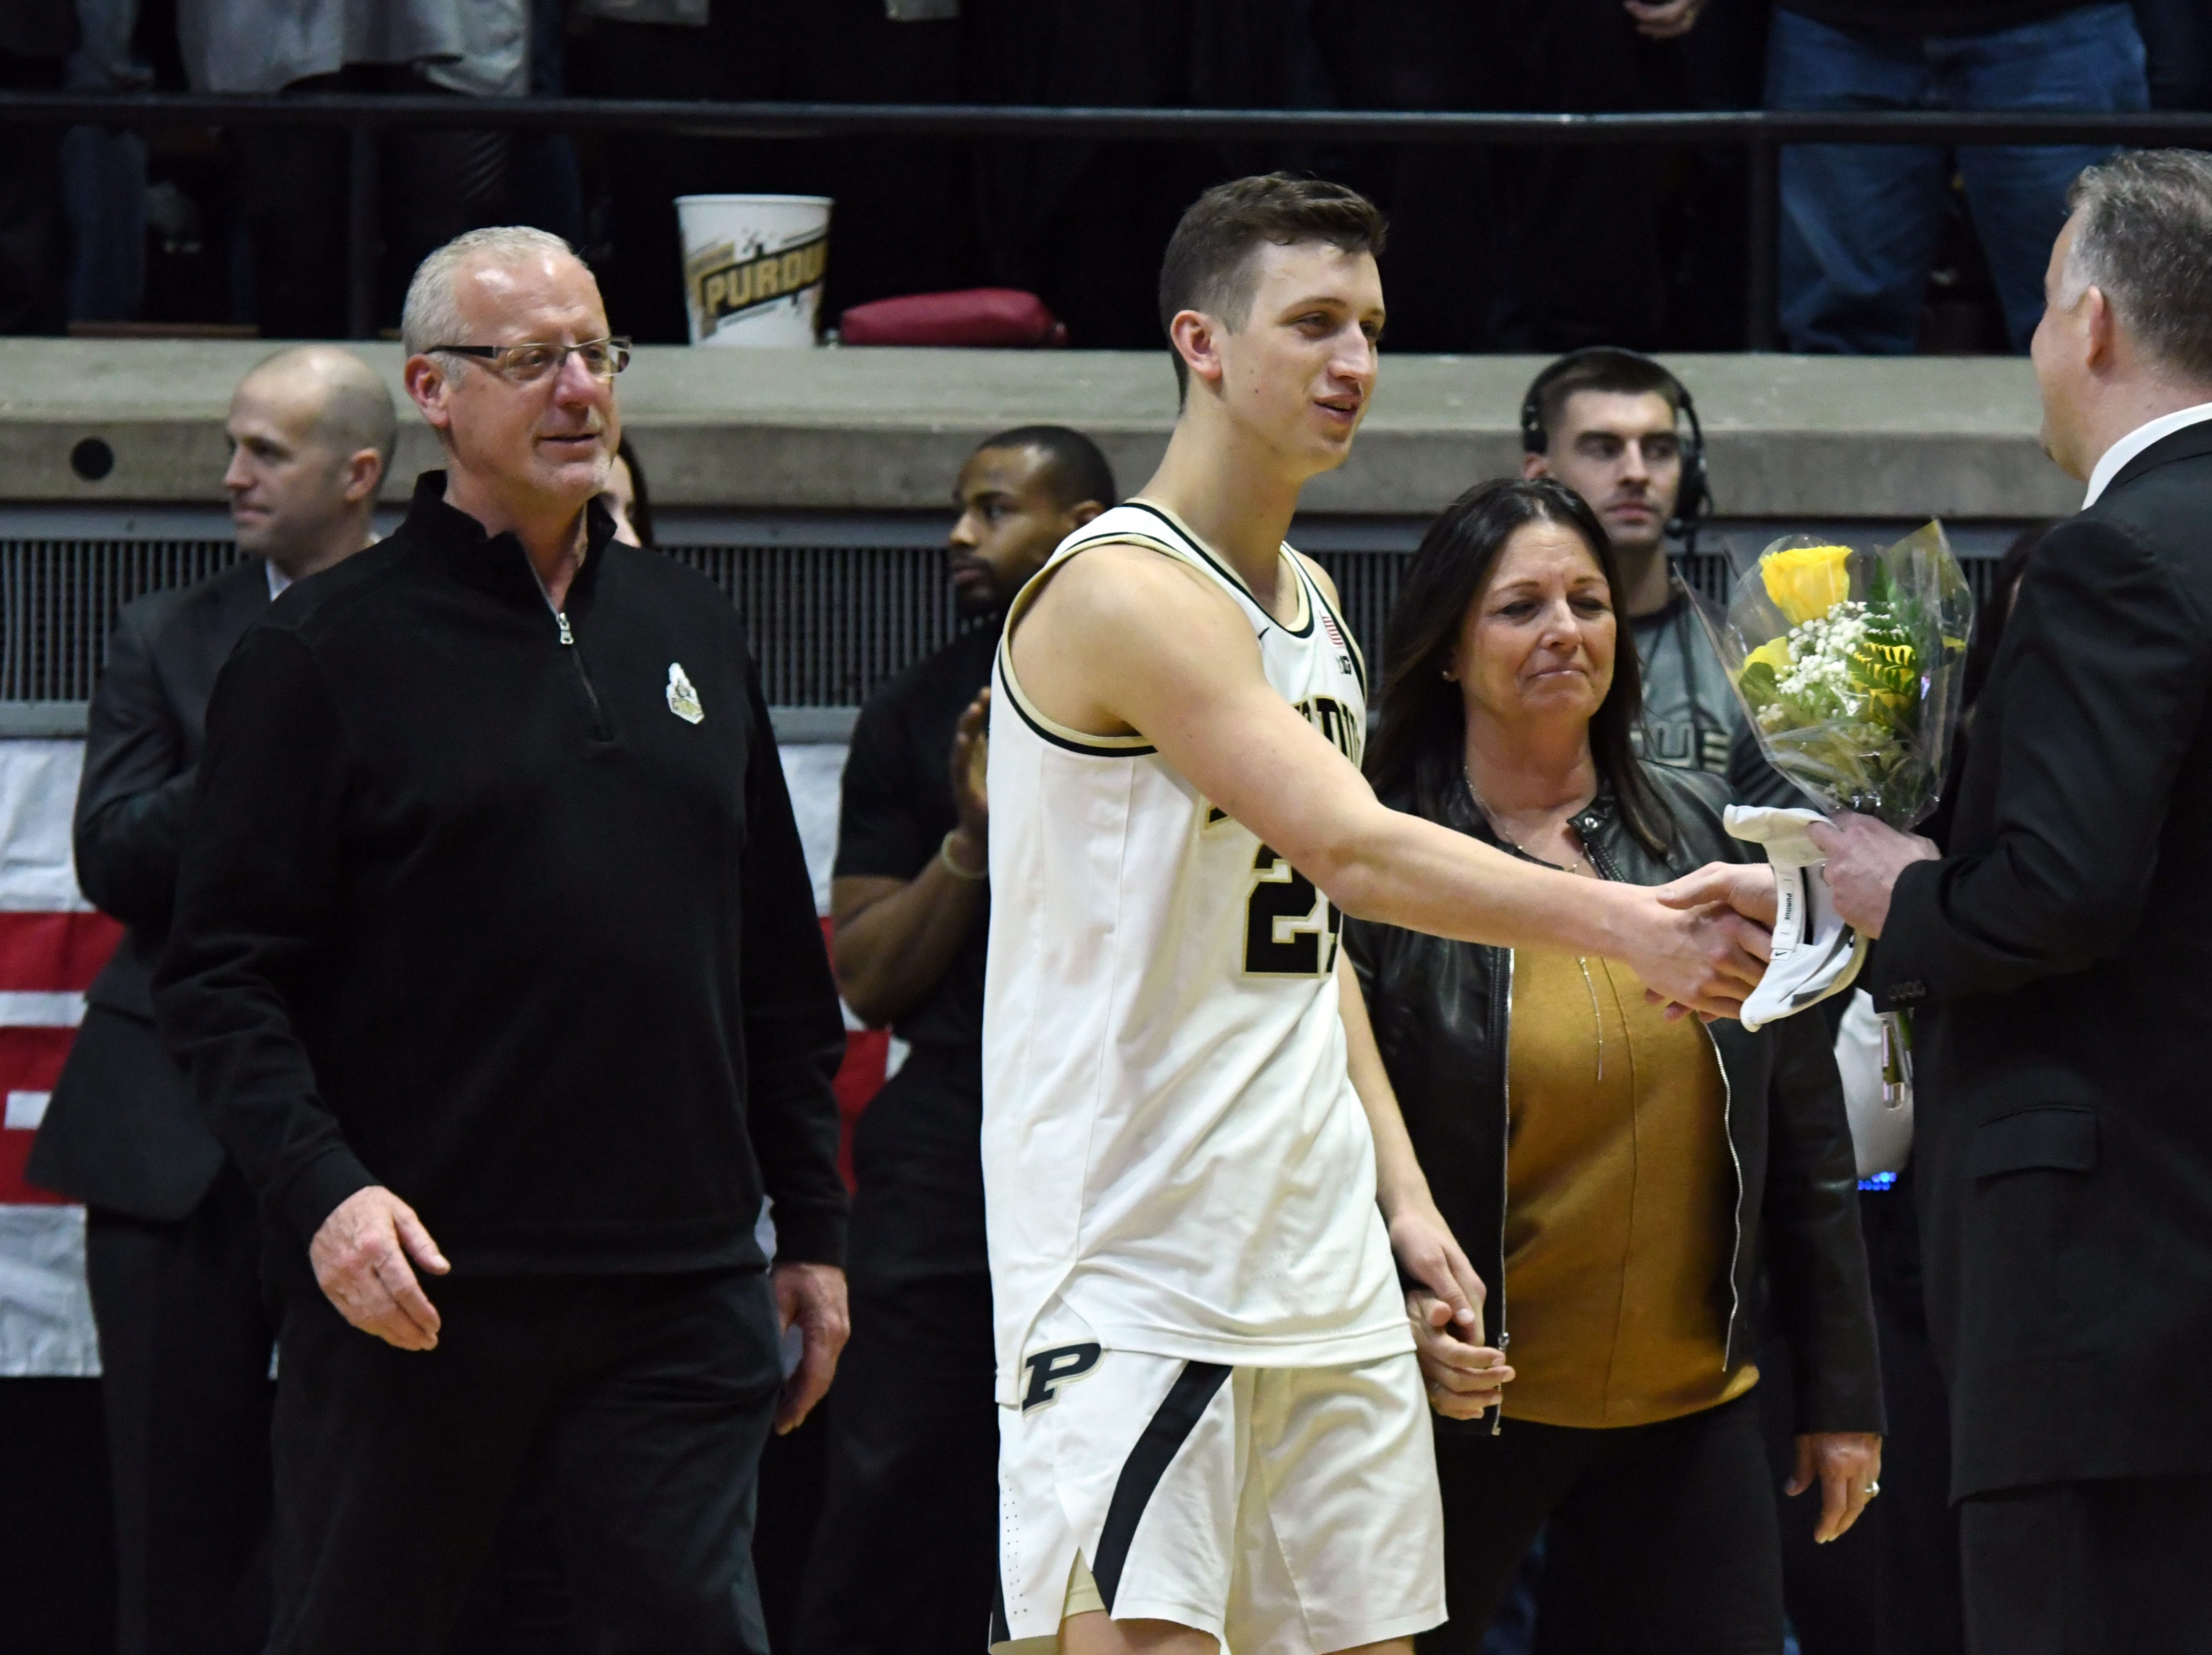 By Frank Oliver for the Journal and Courier --Images from Purdue's win against Ohio State on senior day on March 2, 2019 in West Lafayette. Purdue defeated the Buckeyes 86-51.